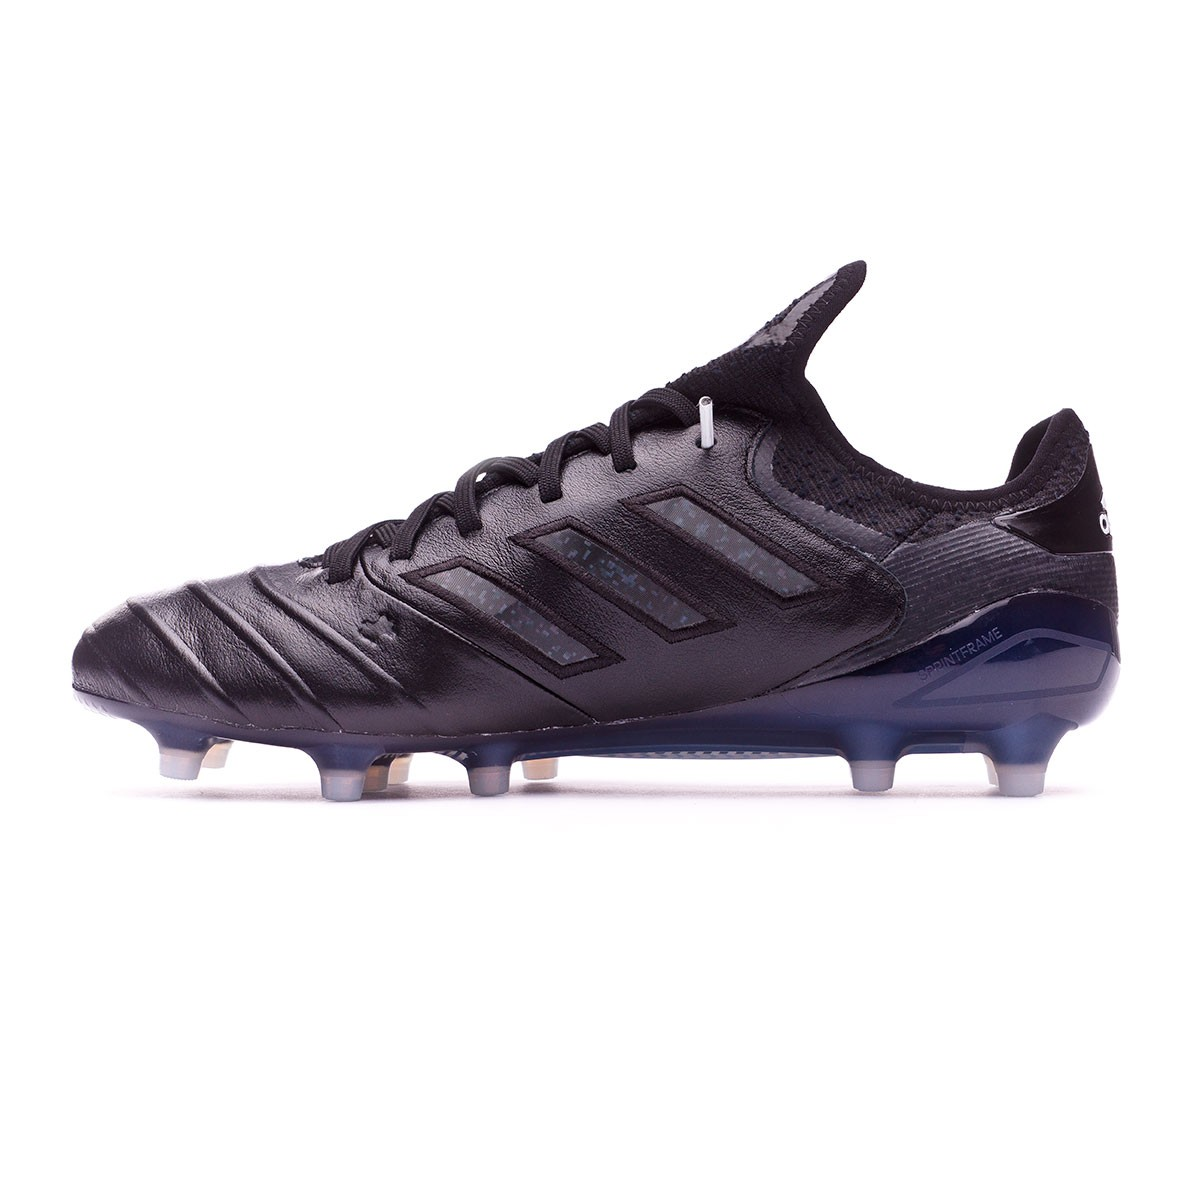 sale retailer b0bca 5b0f5 Boot adidas Copa 18.1 FG Core black-White - Football store Fútbol Emotion